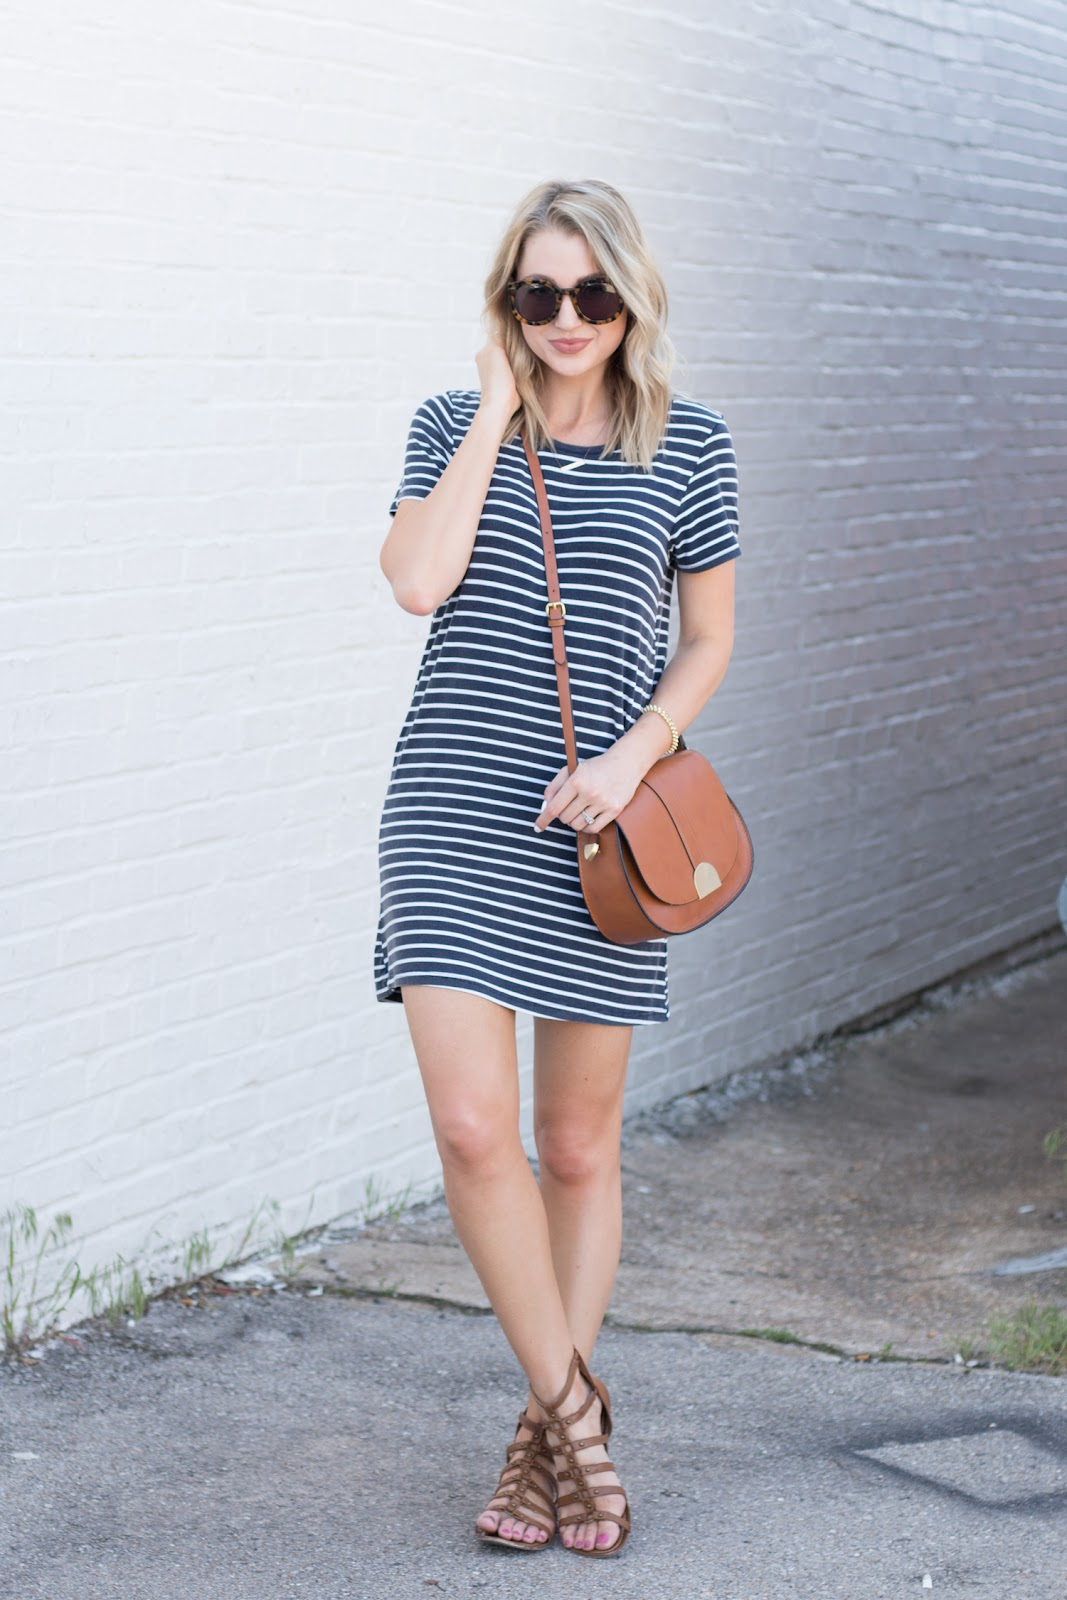 Striped t-shirt dress with gladiator sandals